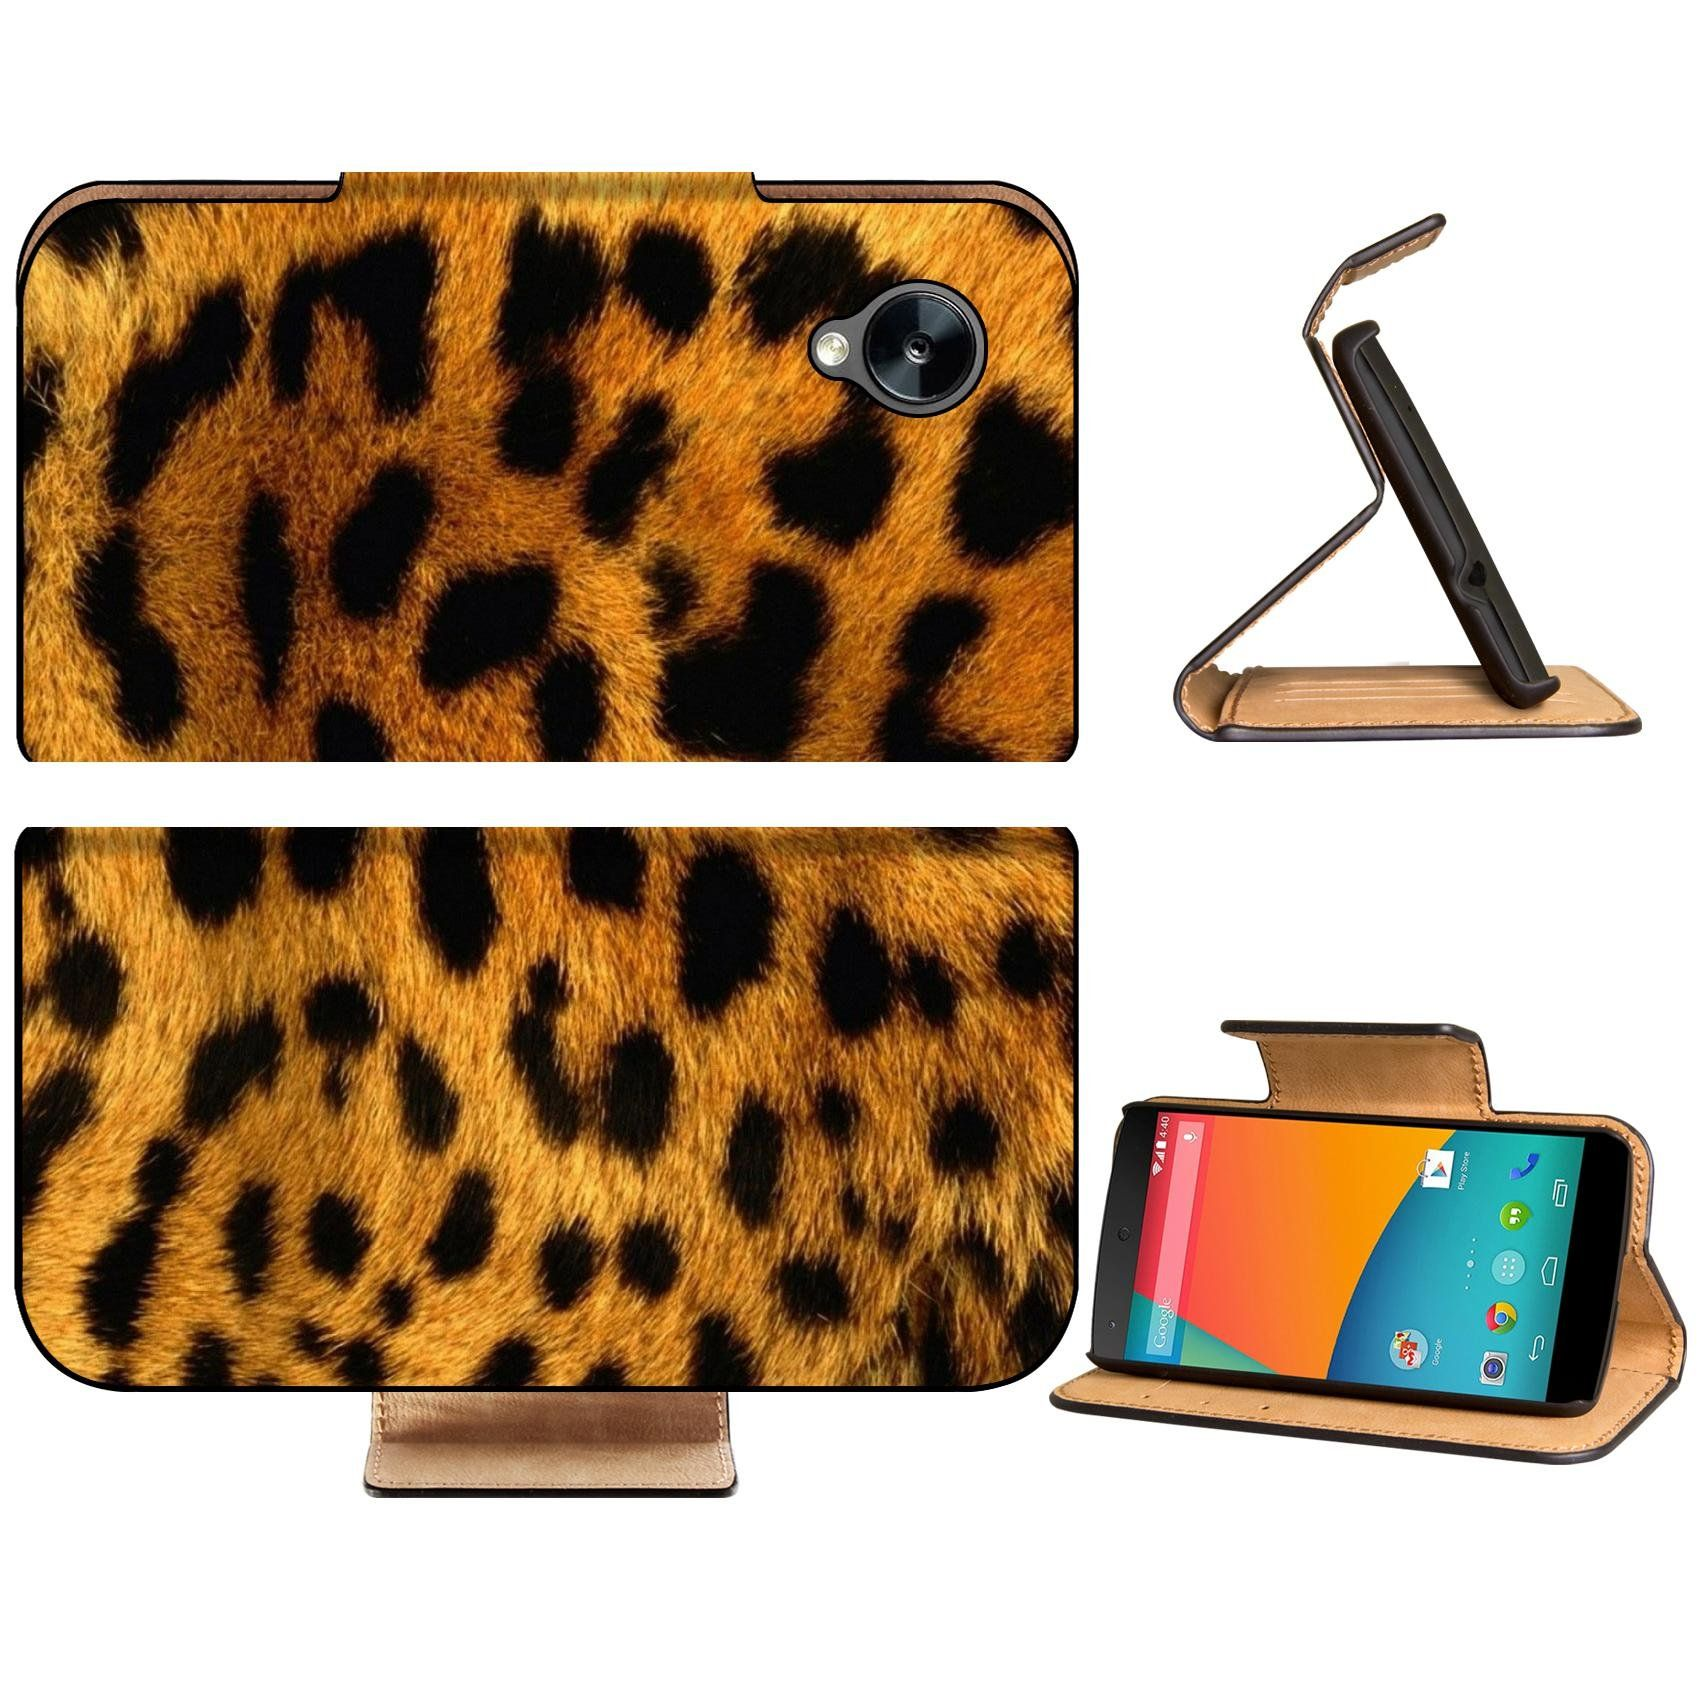 Amazon.com: Cheetah Fur Pattern Animal Print Google Nexus 5 Hammerhead LG Flip Case Stand Magnetic Cover Open Ports Customized Made to Order Support Ready Premium Deluxe Pu Leather 5 11/16 Inch (145mm) X 2 15/16 Inch (75mm) X 9/16 Inch (14mm) Luxlady Nexus cover Professional Nexus5 Cases Nexus_5 Accessories Graphic Background Covers Designed Model Folio Sleeve HD Template Designed Wallpaper Photo Jacket Wifi Protector Cellphone Wireless Cell phone: Cell Phones & Accessories